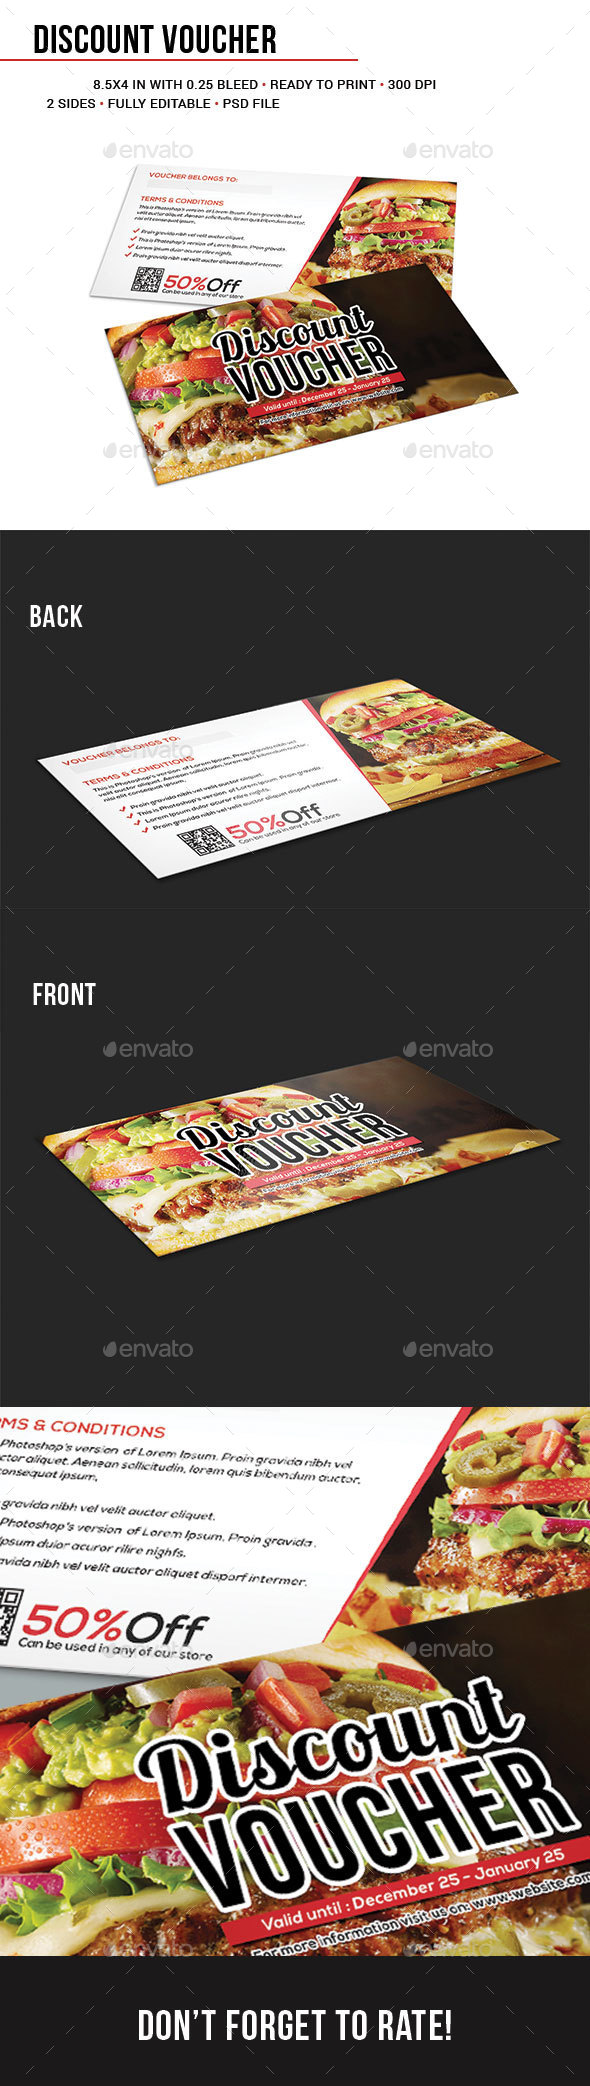 Discount Voucher Template - Cards & Invites Print Templates